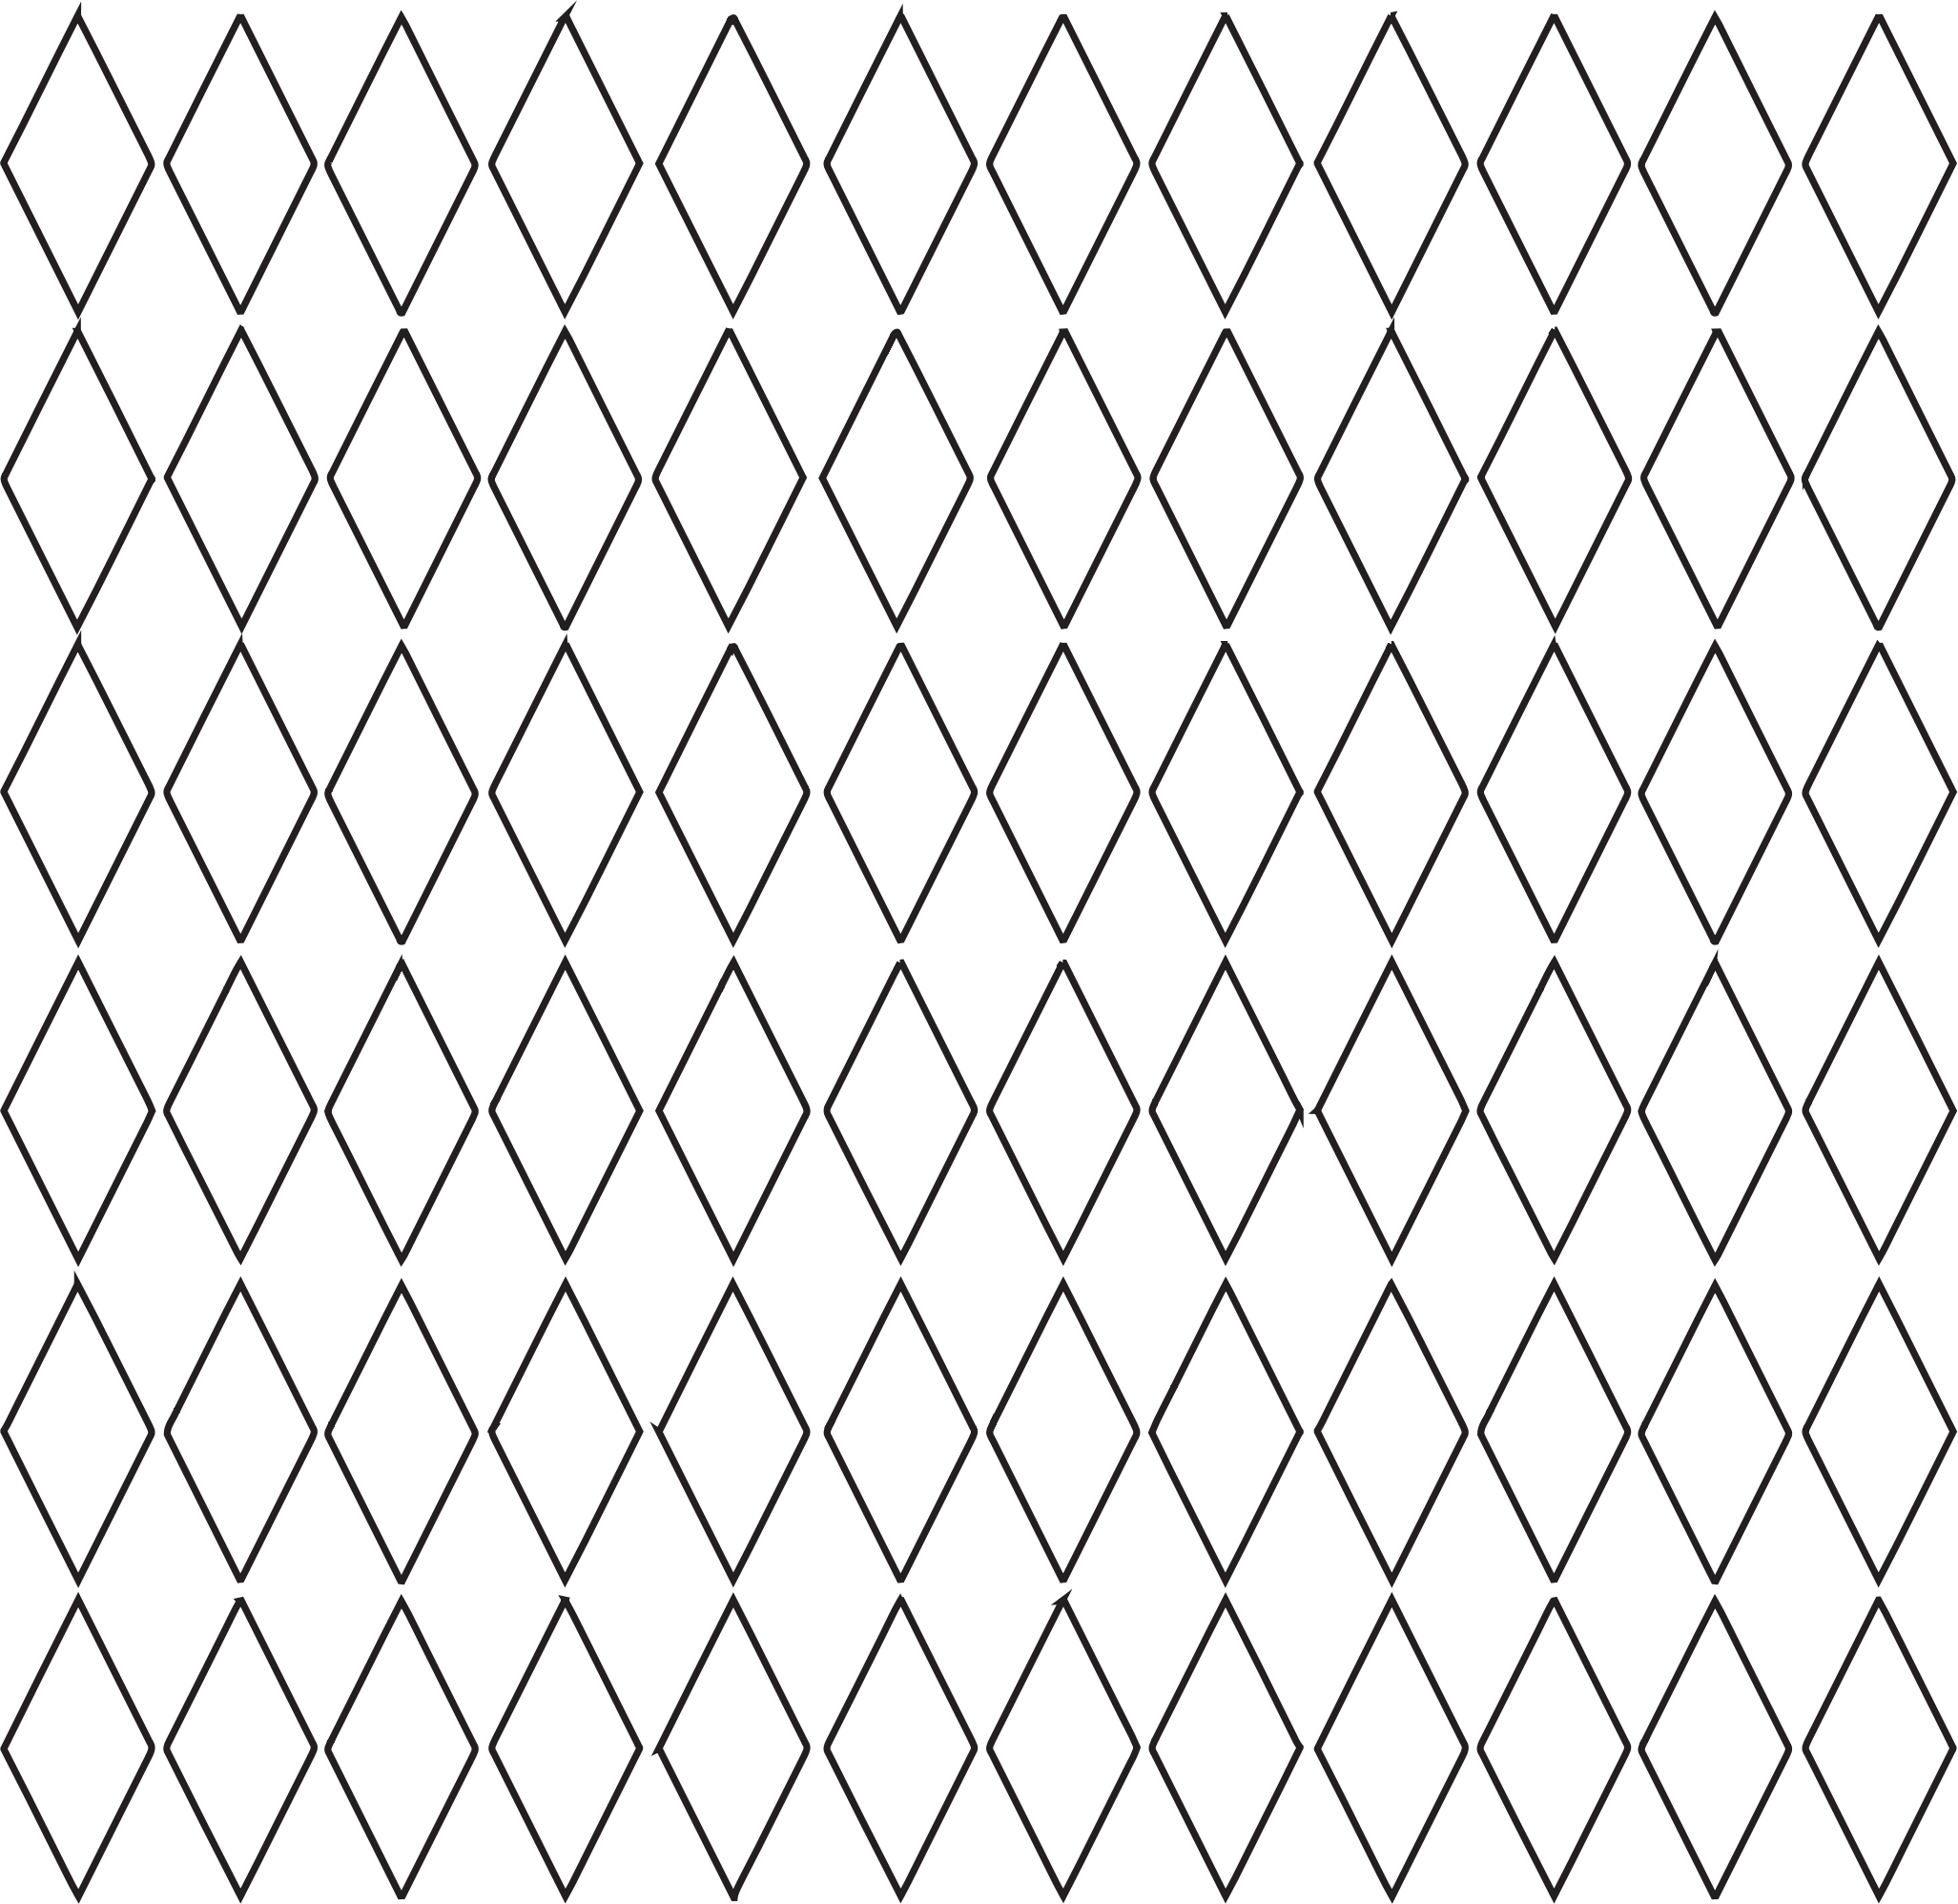 Pattern png. Diamond grid no color